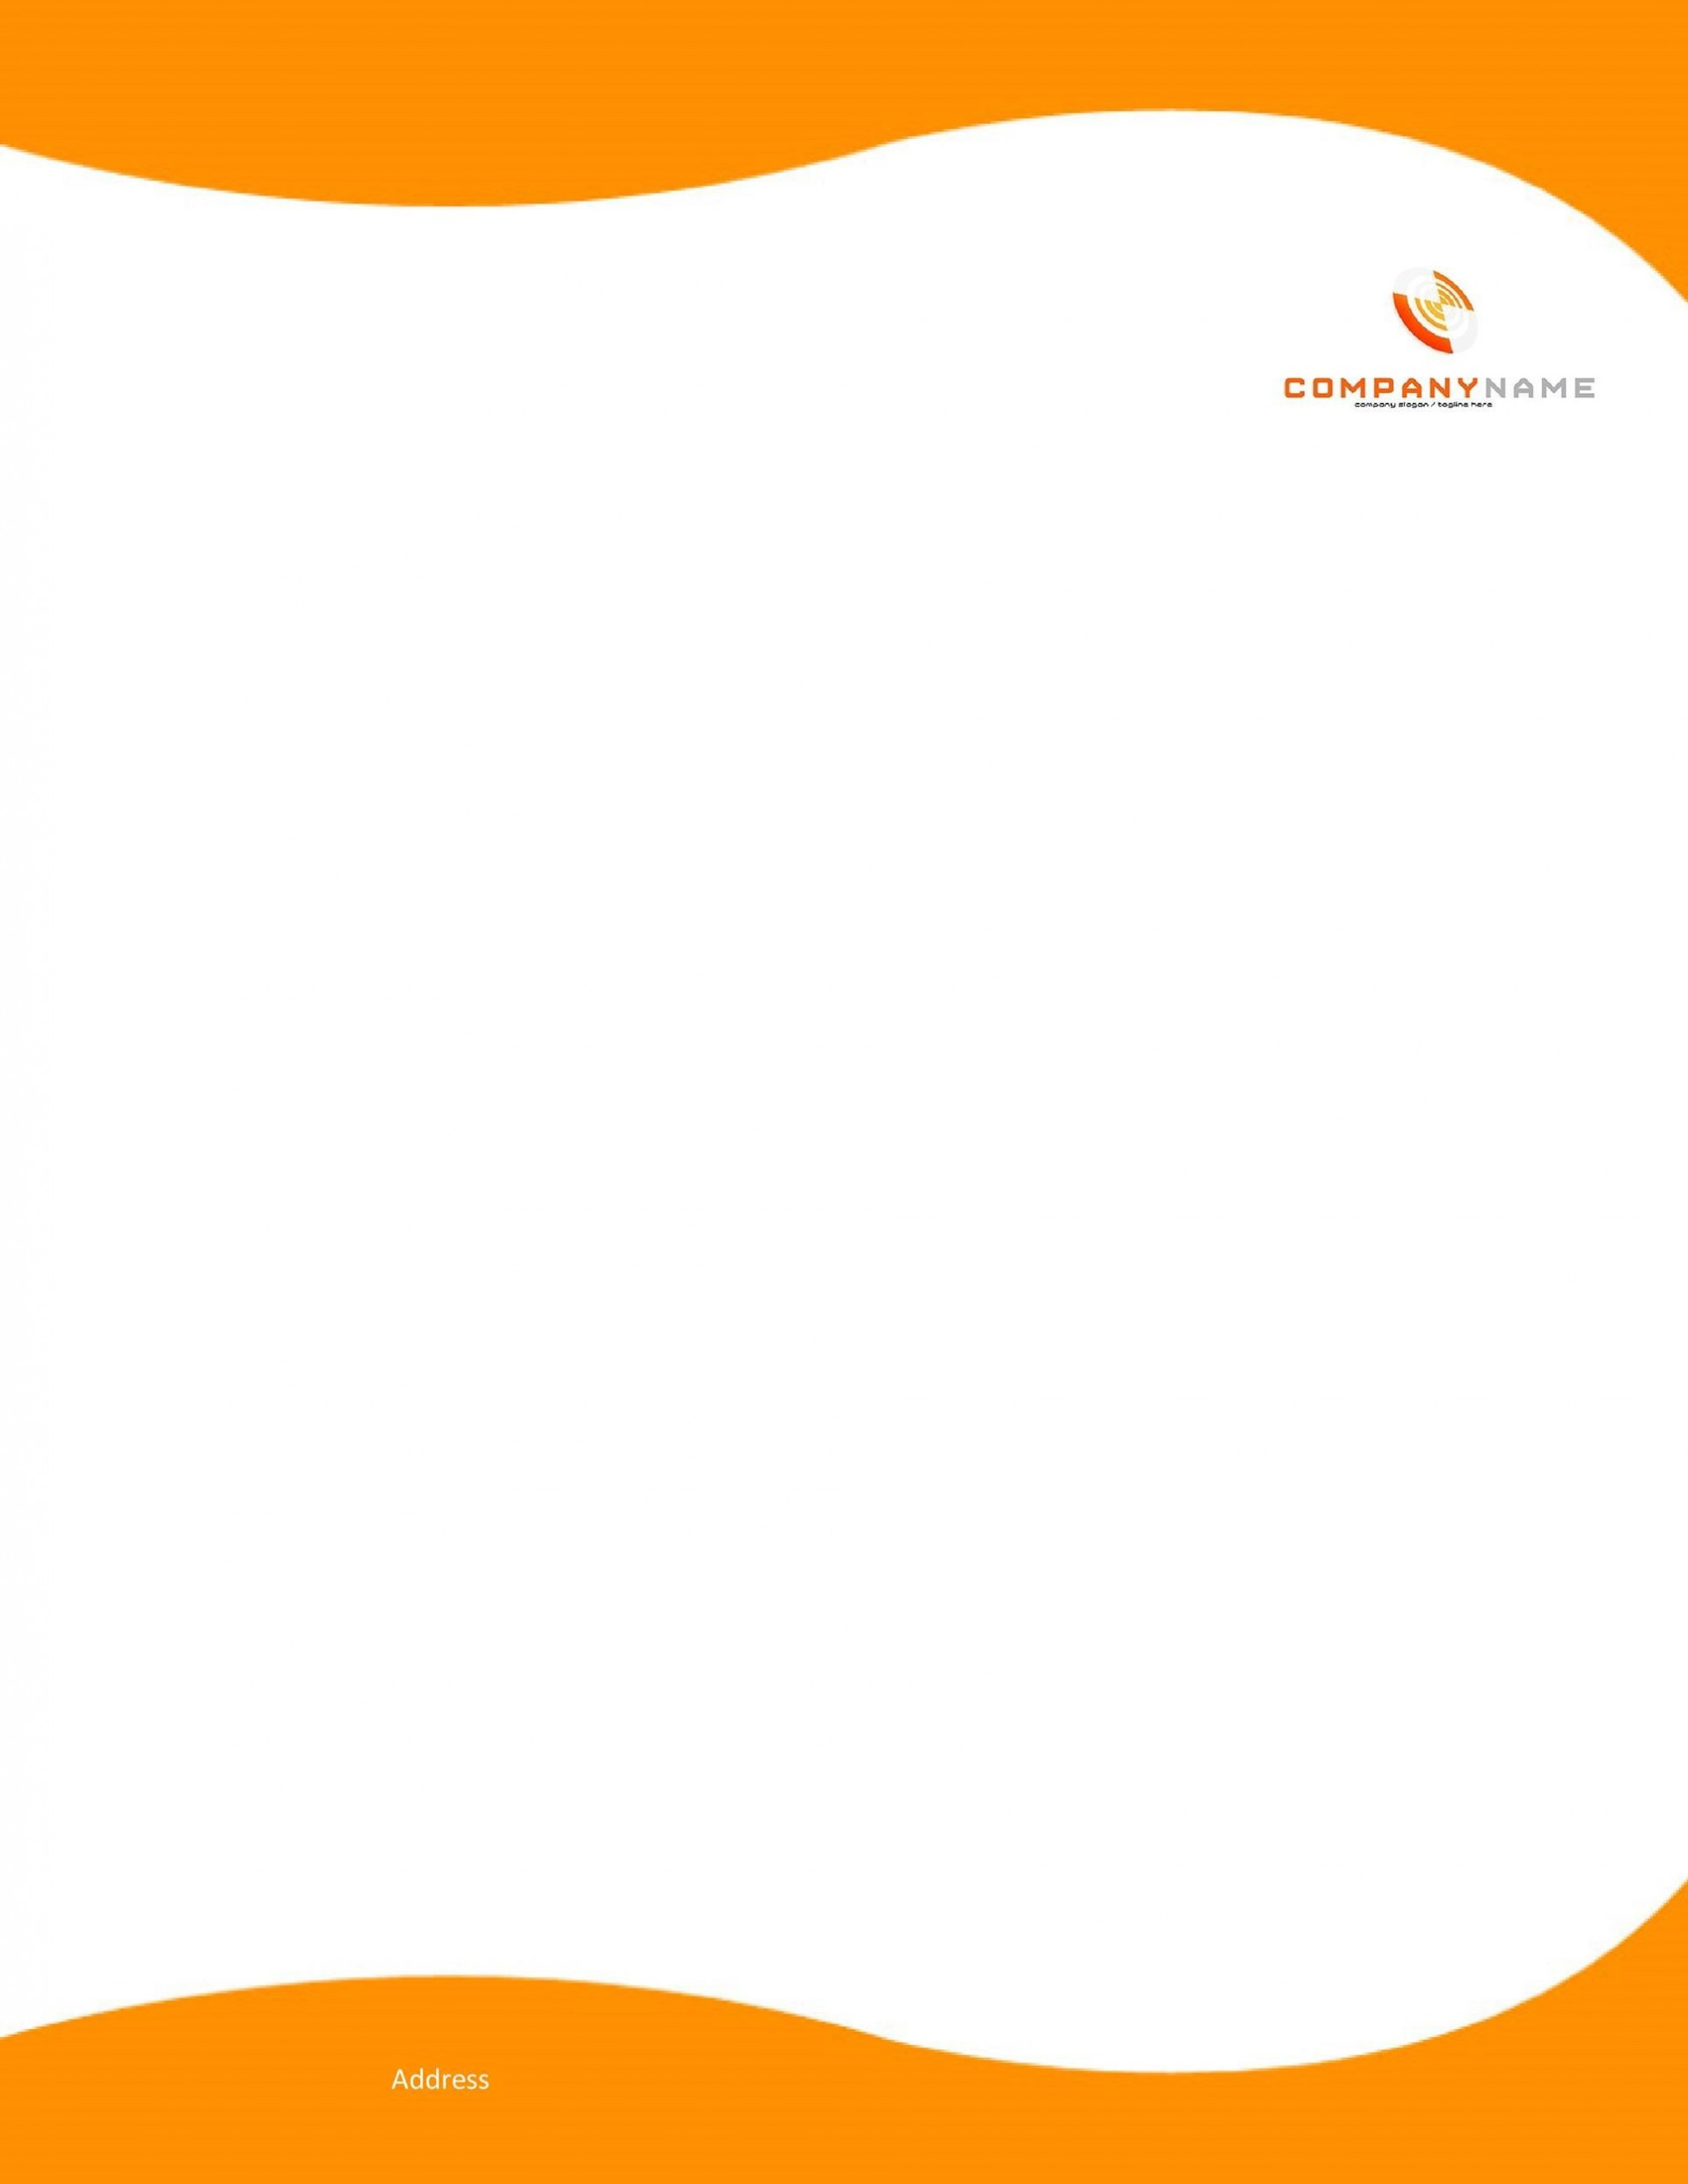 006 Stunning Letterhead Format In Word Free Download Pdf Highest Quality 1920